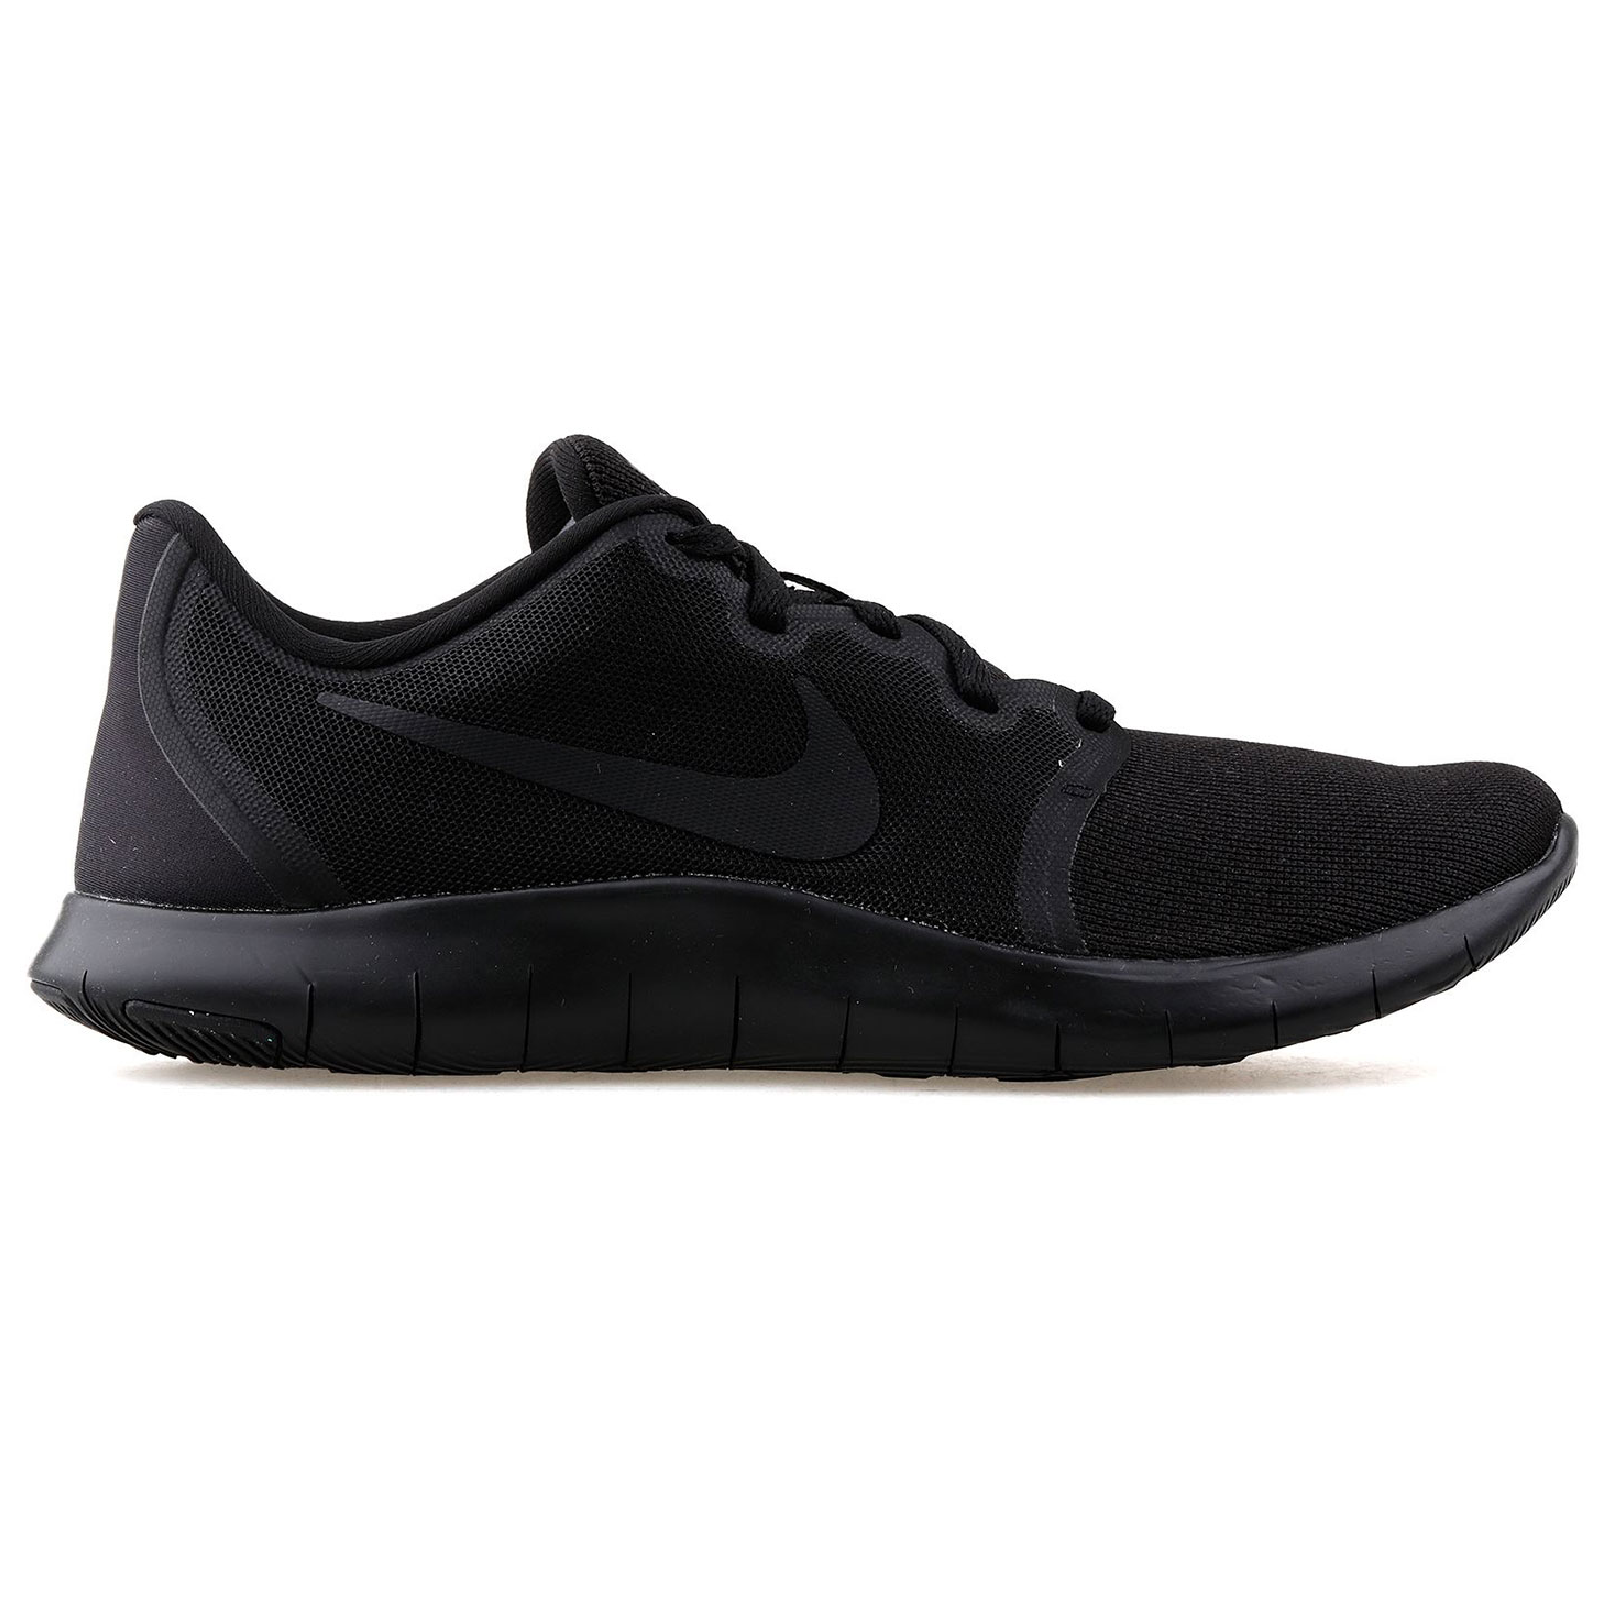 NIKE FLEX CONTACT 2 40-49.5 NEU experience trainer free 5.0 3.0 air max roshe